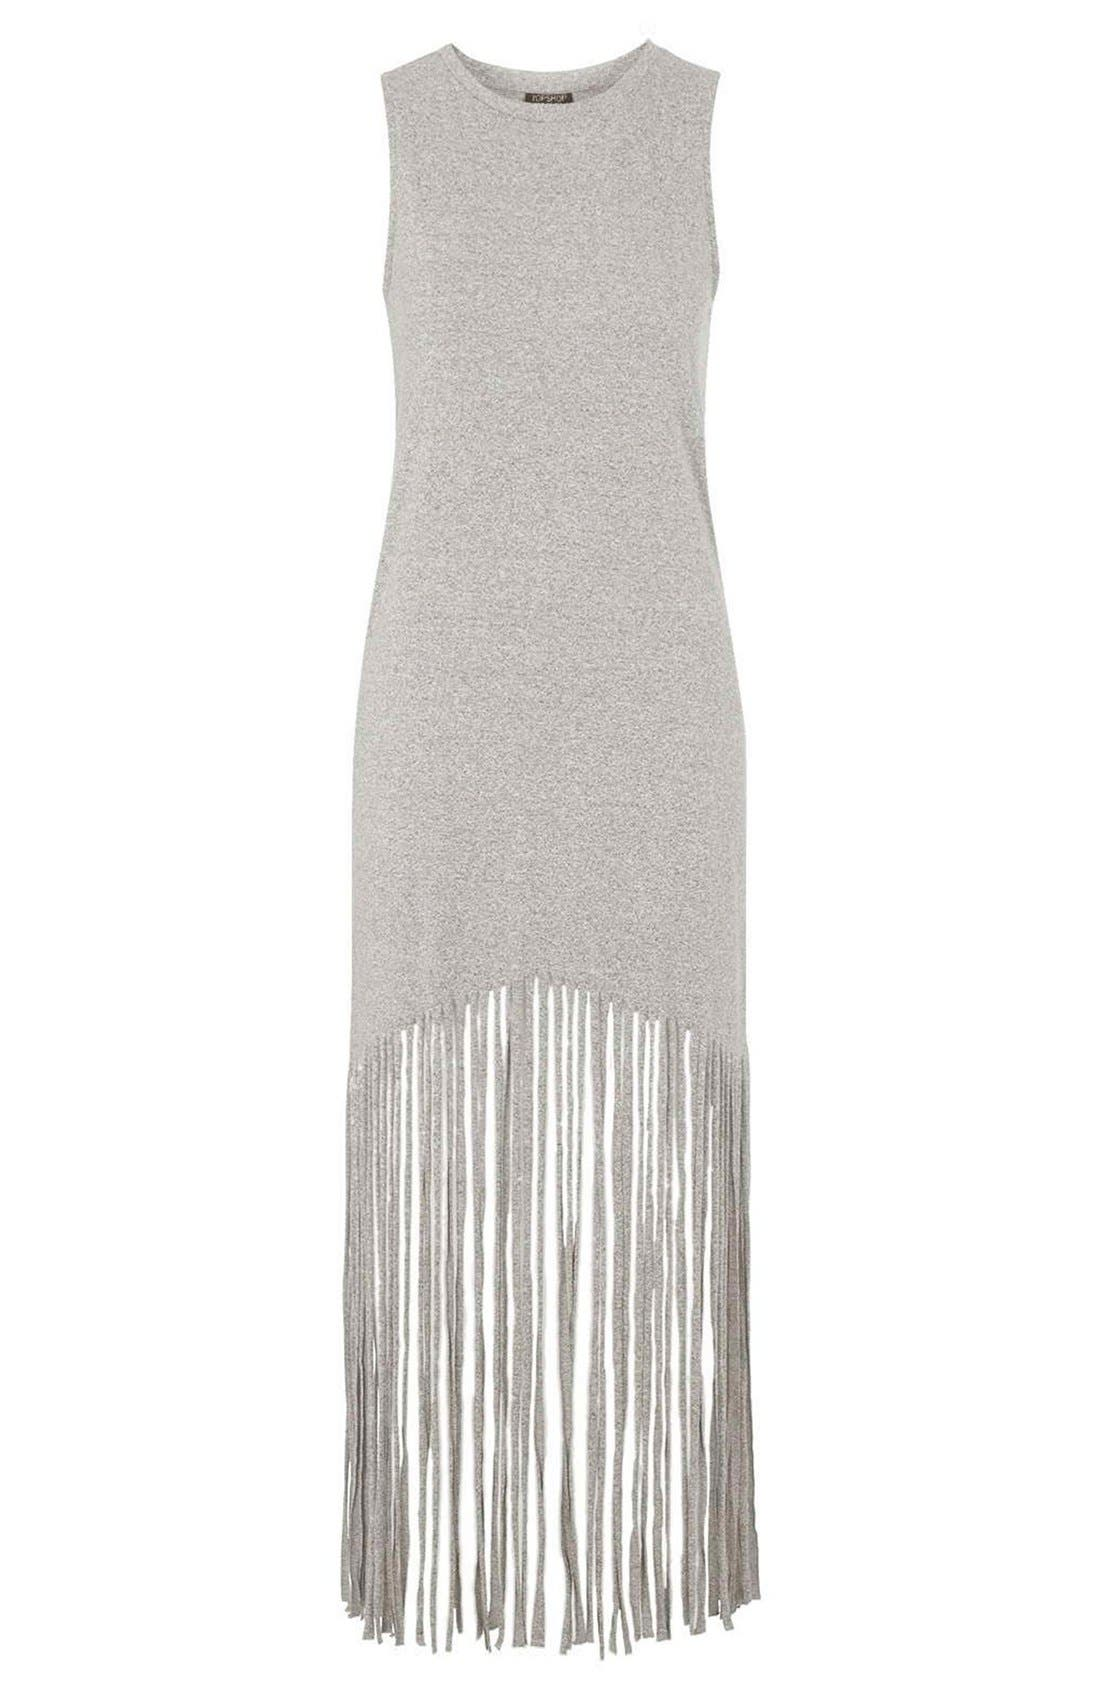 Sleeveless Fringe Dress,                             Alternate thumbnail 4, color,                             020